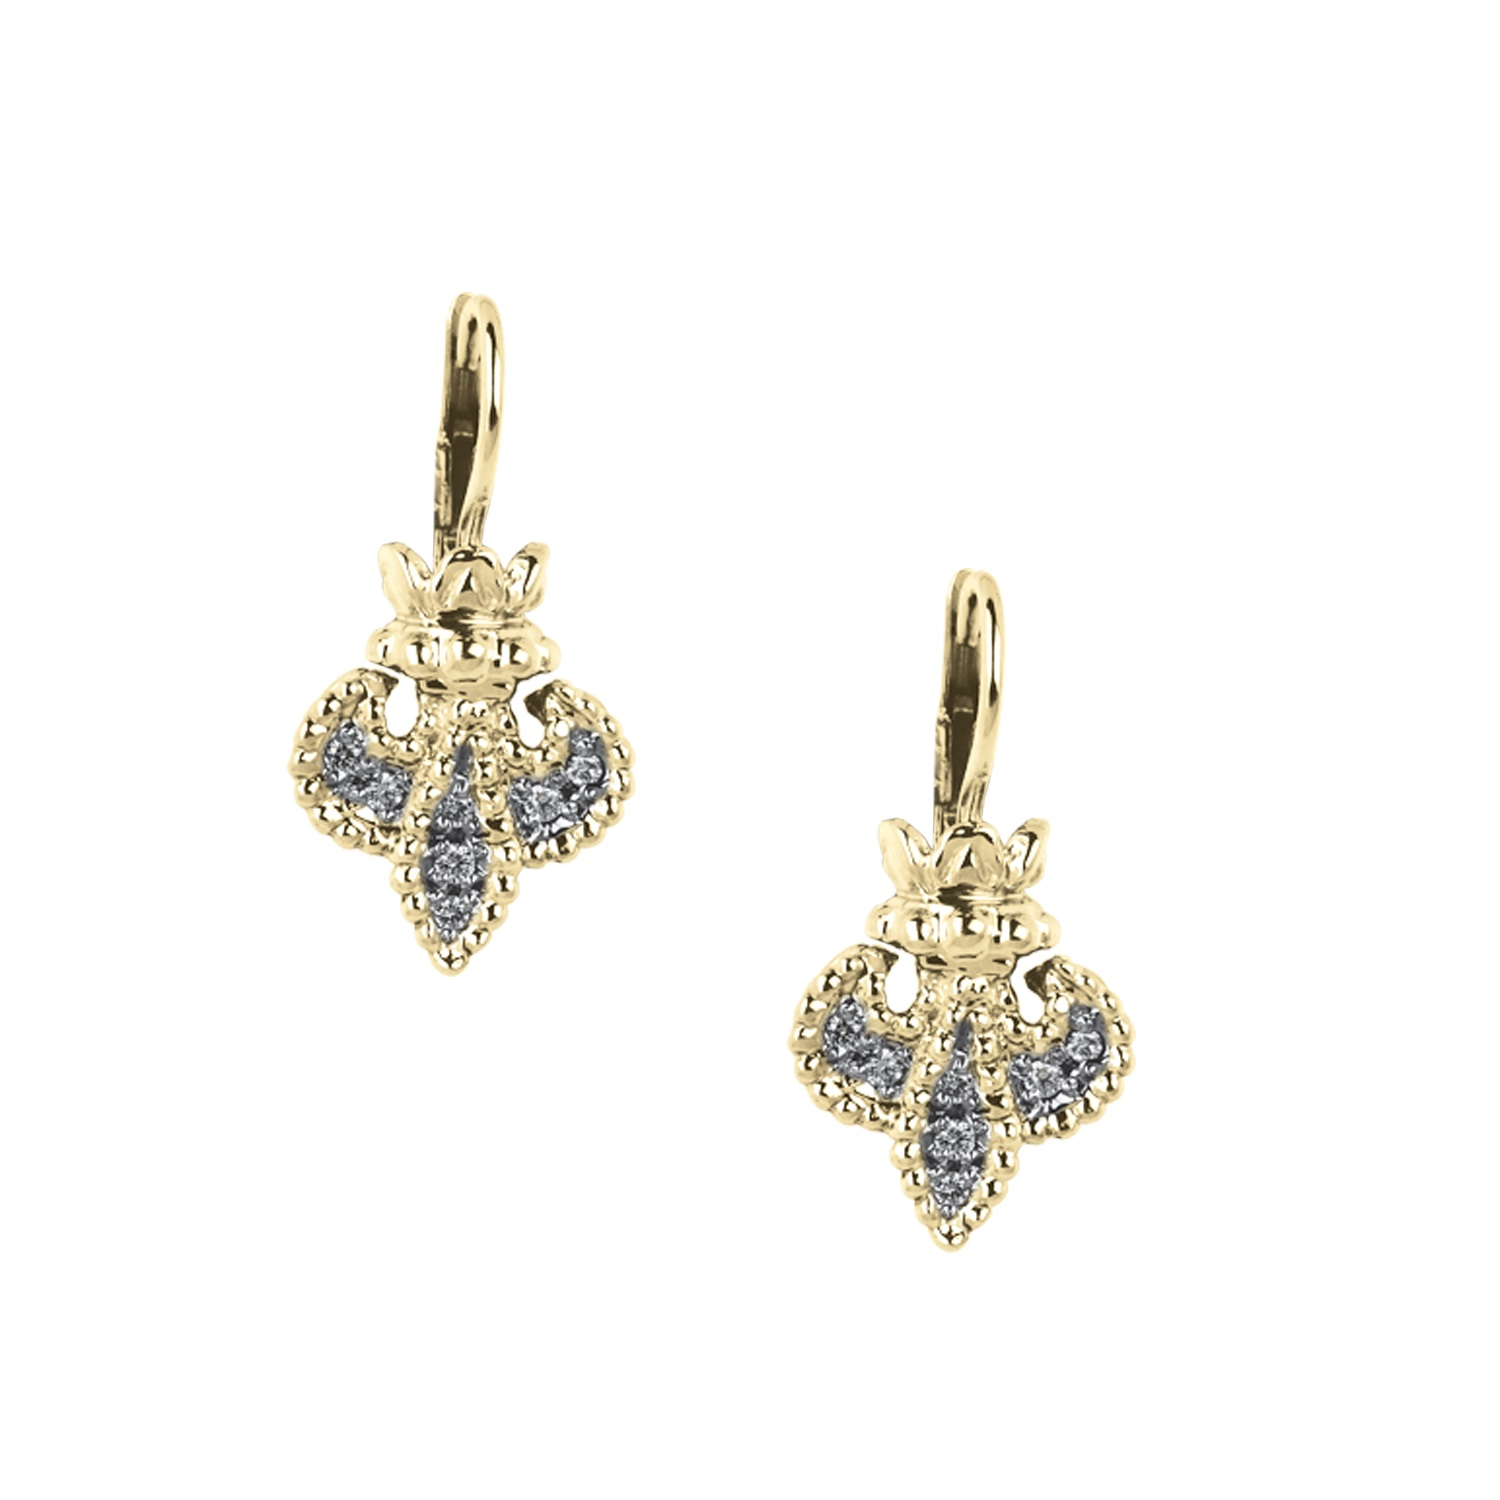 Alwand Vahan Designer Jewelry - Lady's 14Kt Yellow Gold Fluer De Lis Earrings Alwan Vahan Designer Jewelry With 18=0.19Tw Round Diamonds